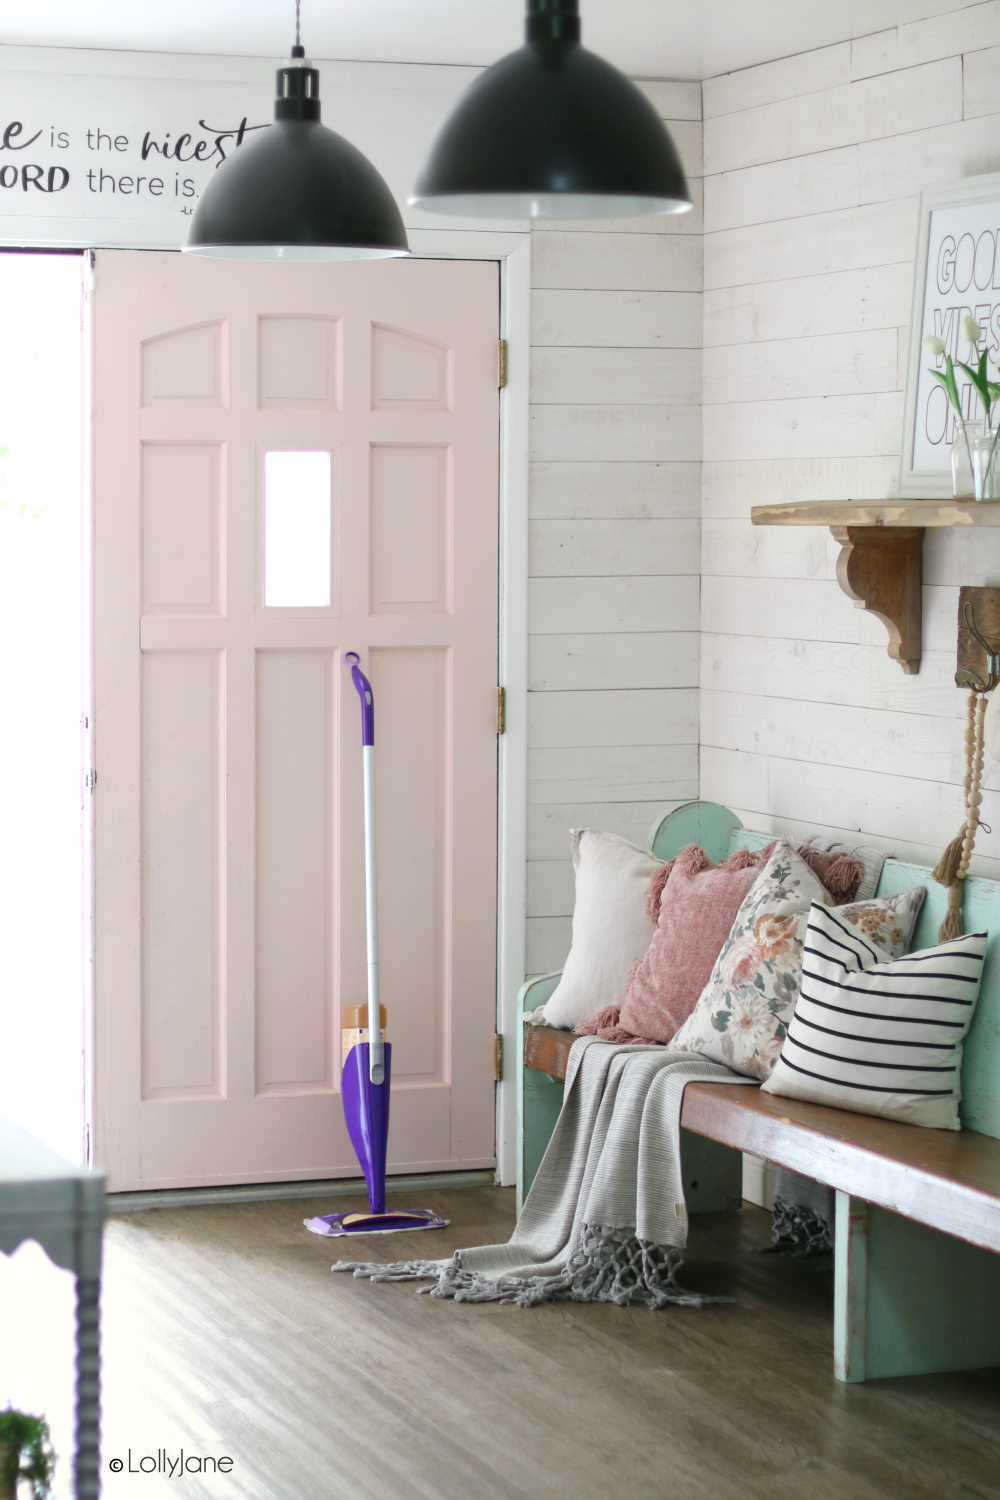 Take care of your wood floors with these simple tips! #swiffer #woodfloors #iheartwoodfloors